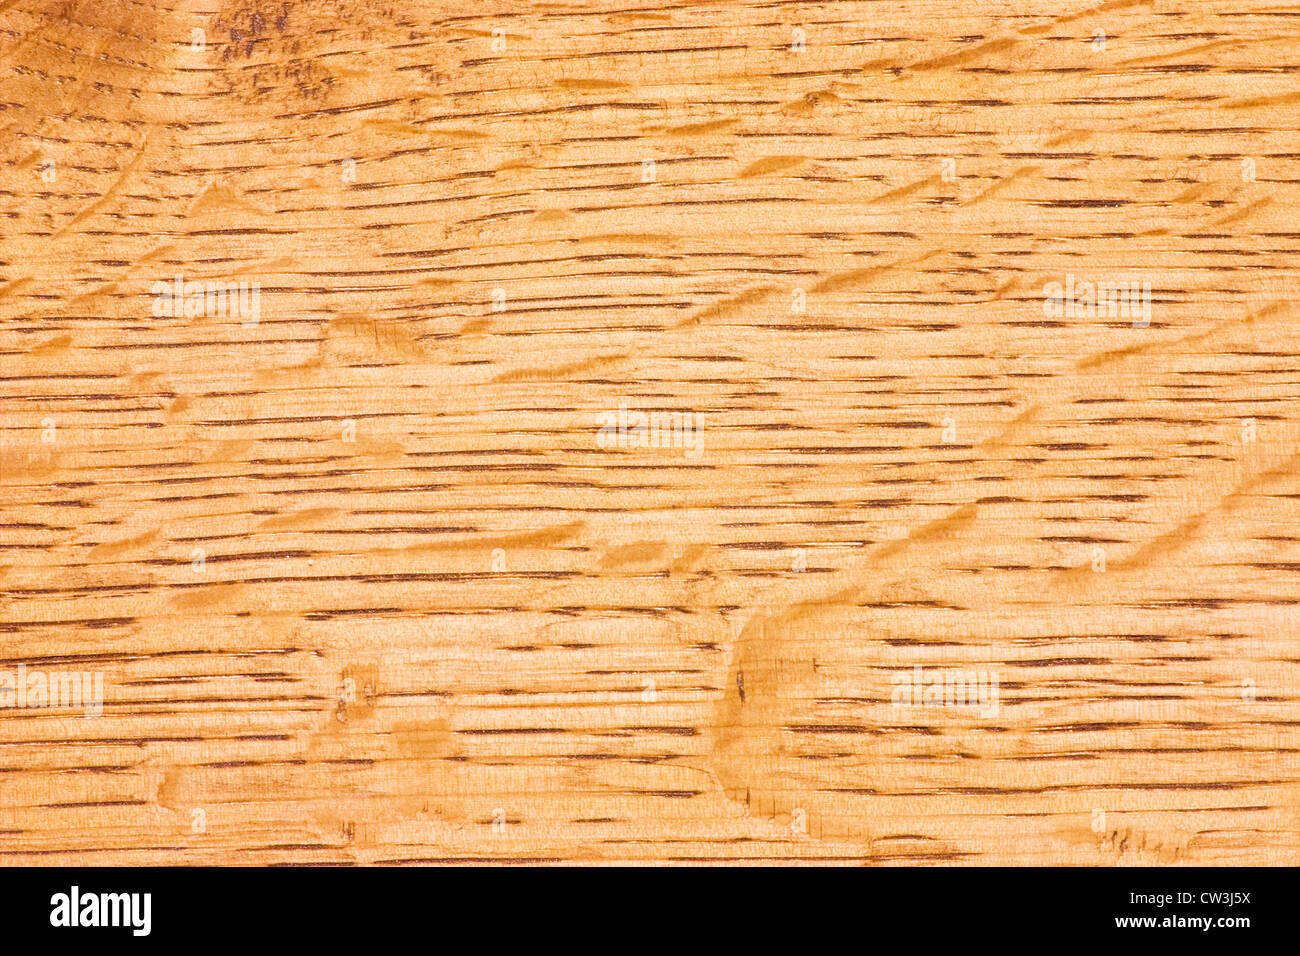 Quarter Sawn Oak Stock Photos Quarter Sawn Oak Stock Images Alamy